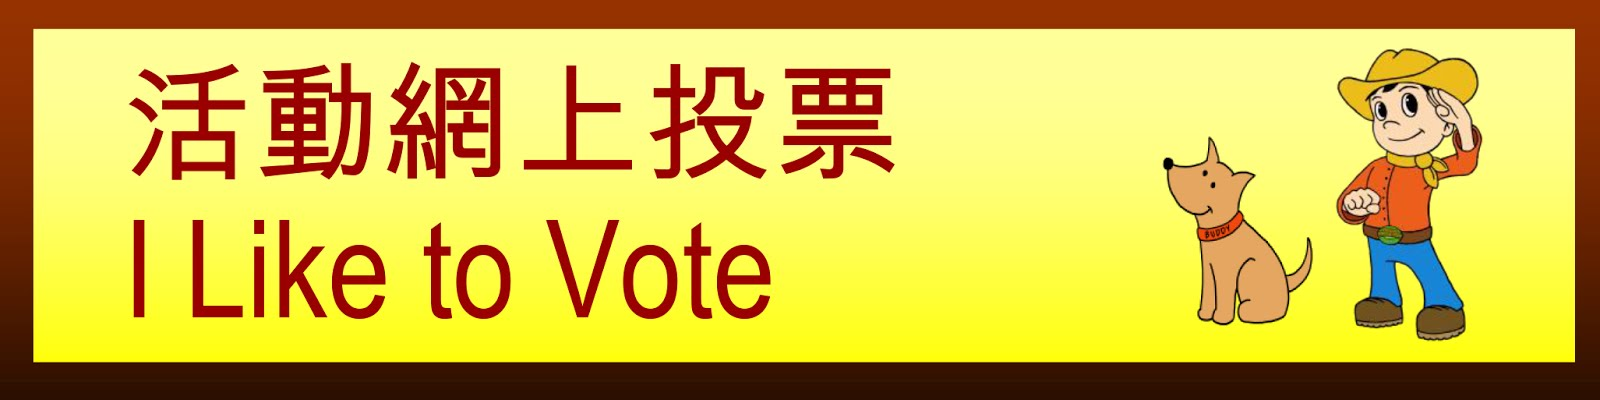 I Like to Vote: Group B組